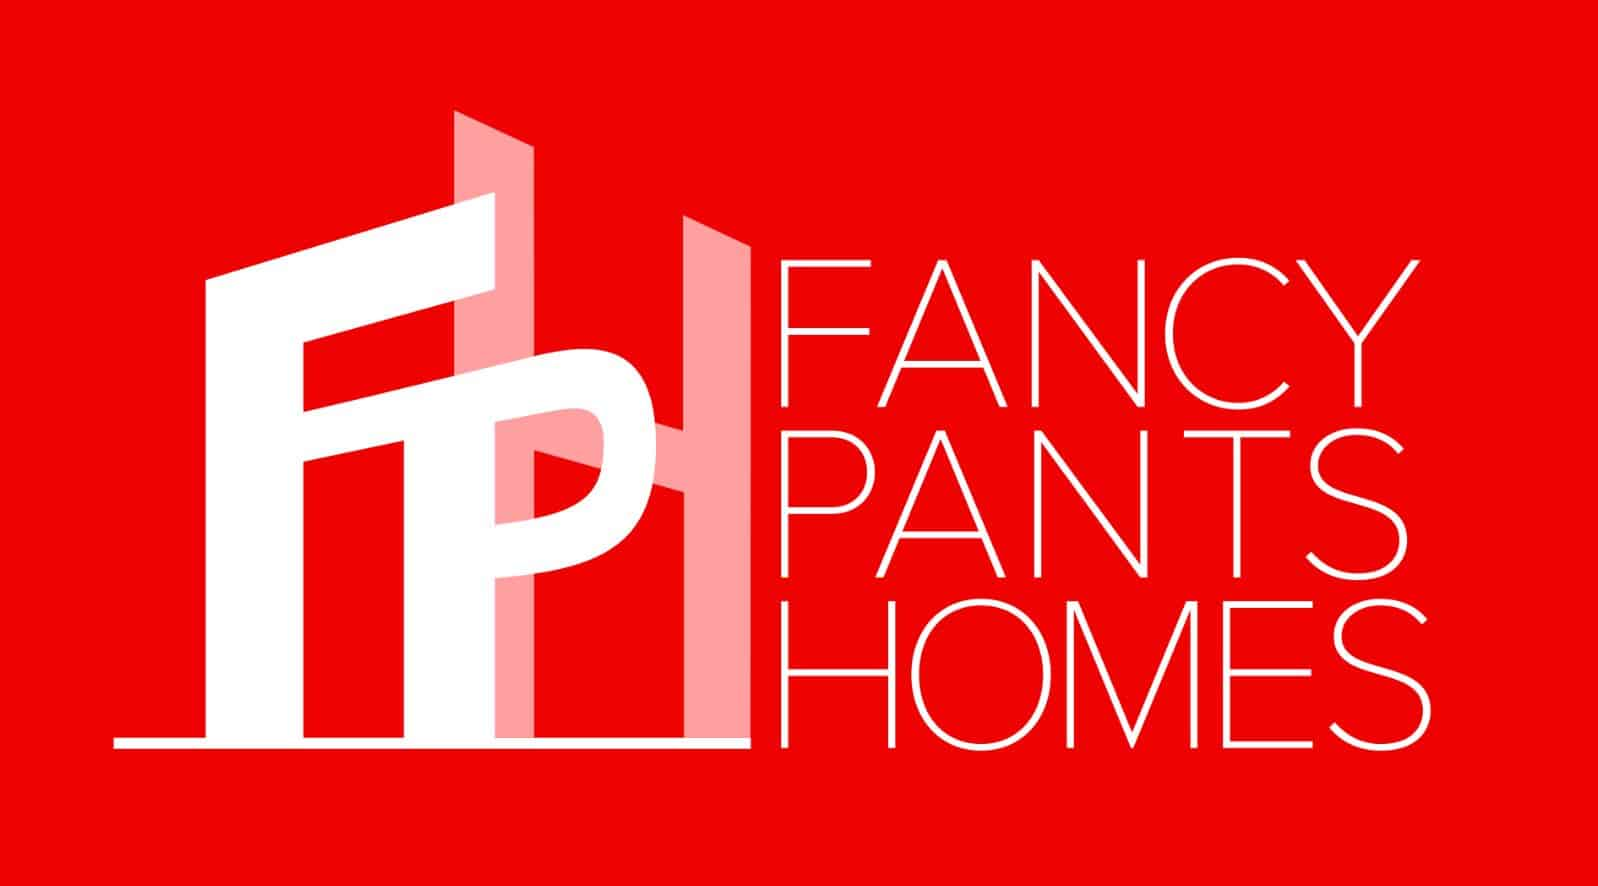 advertise on fancy pants homes